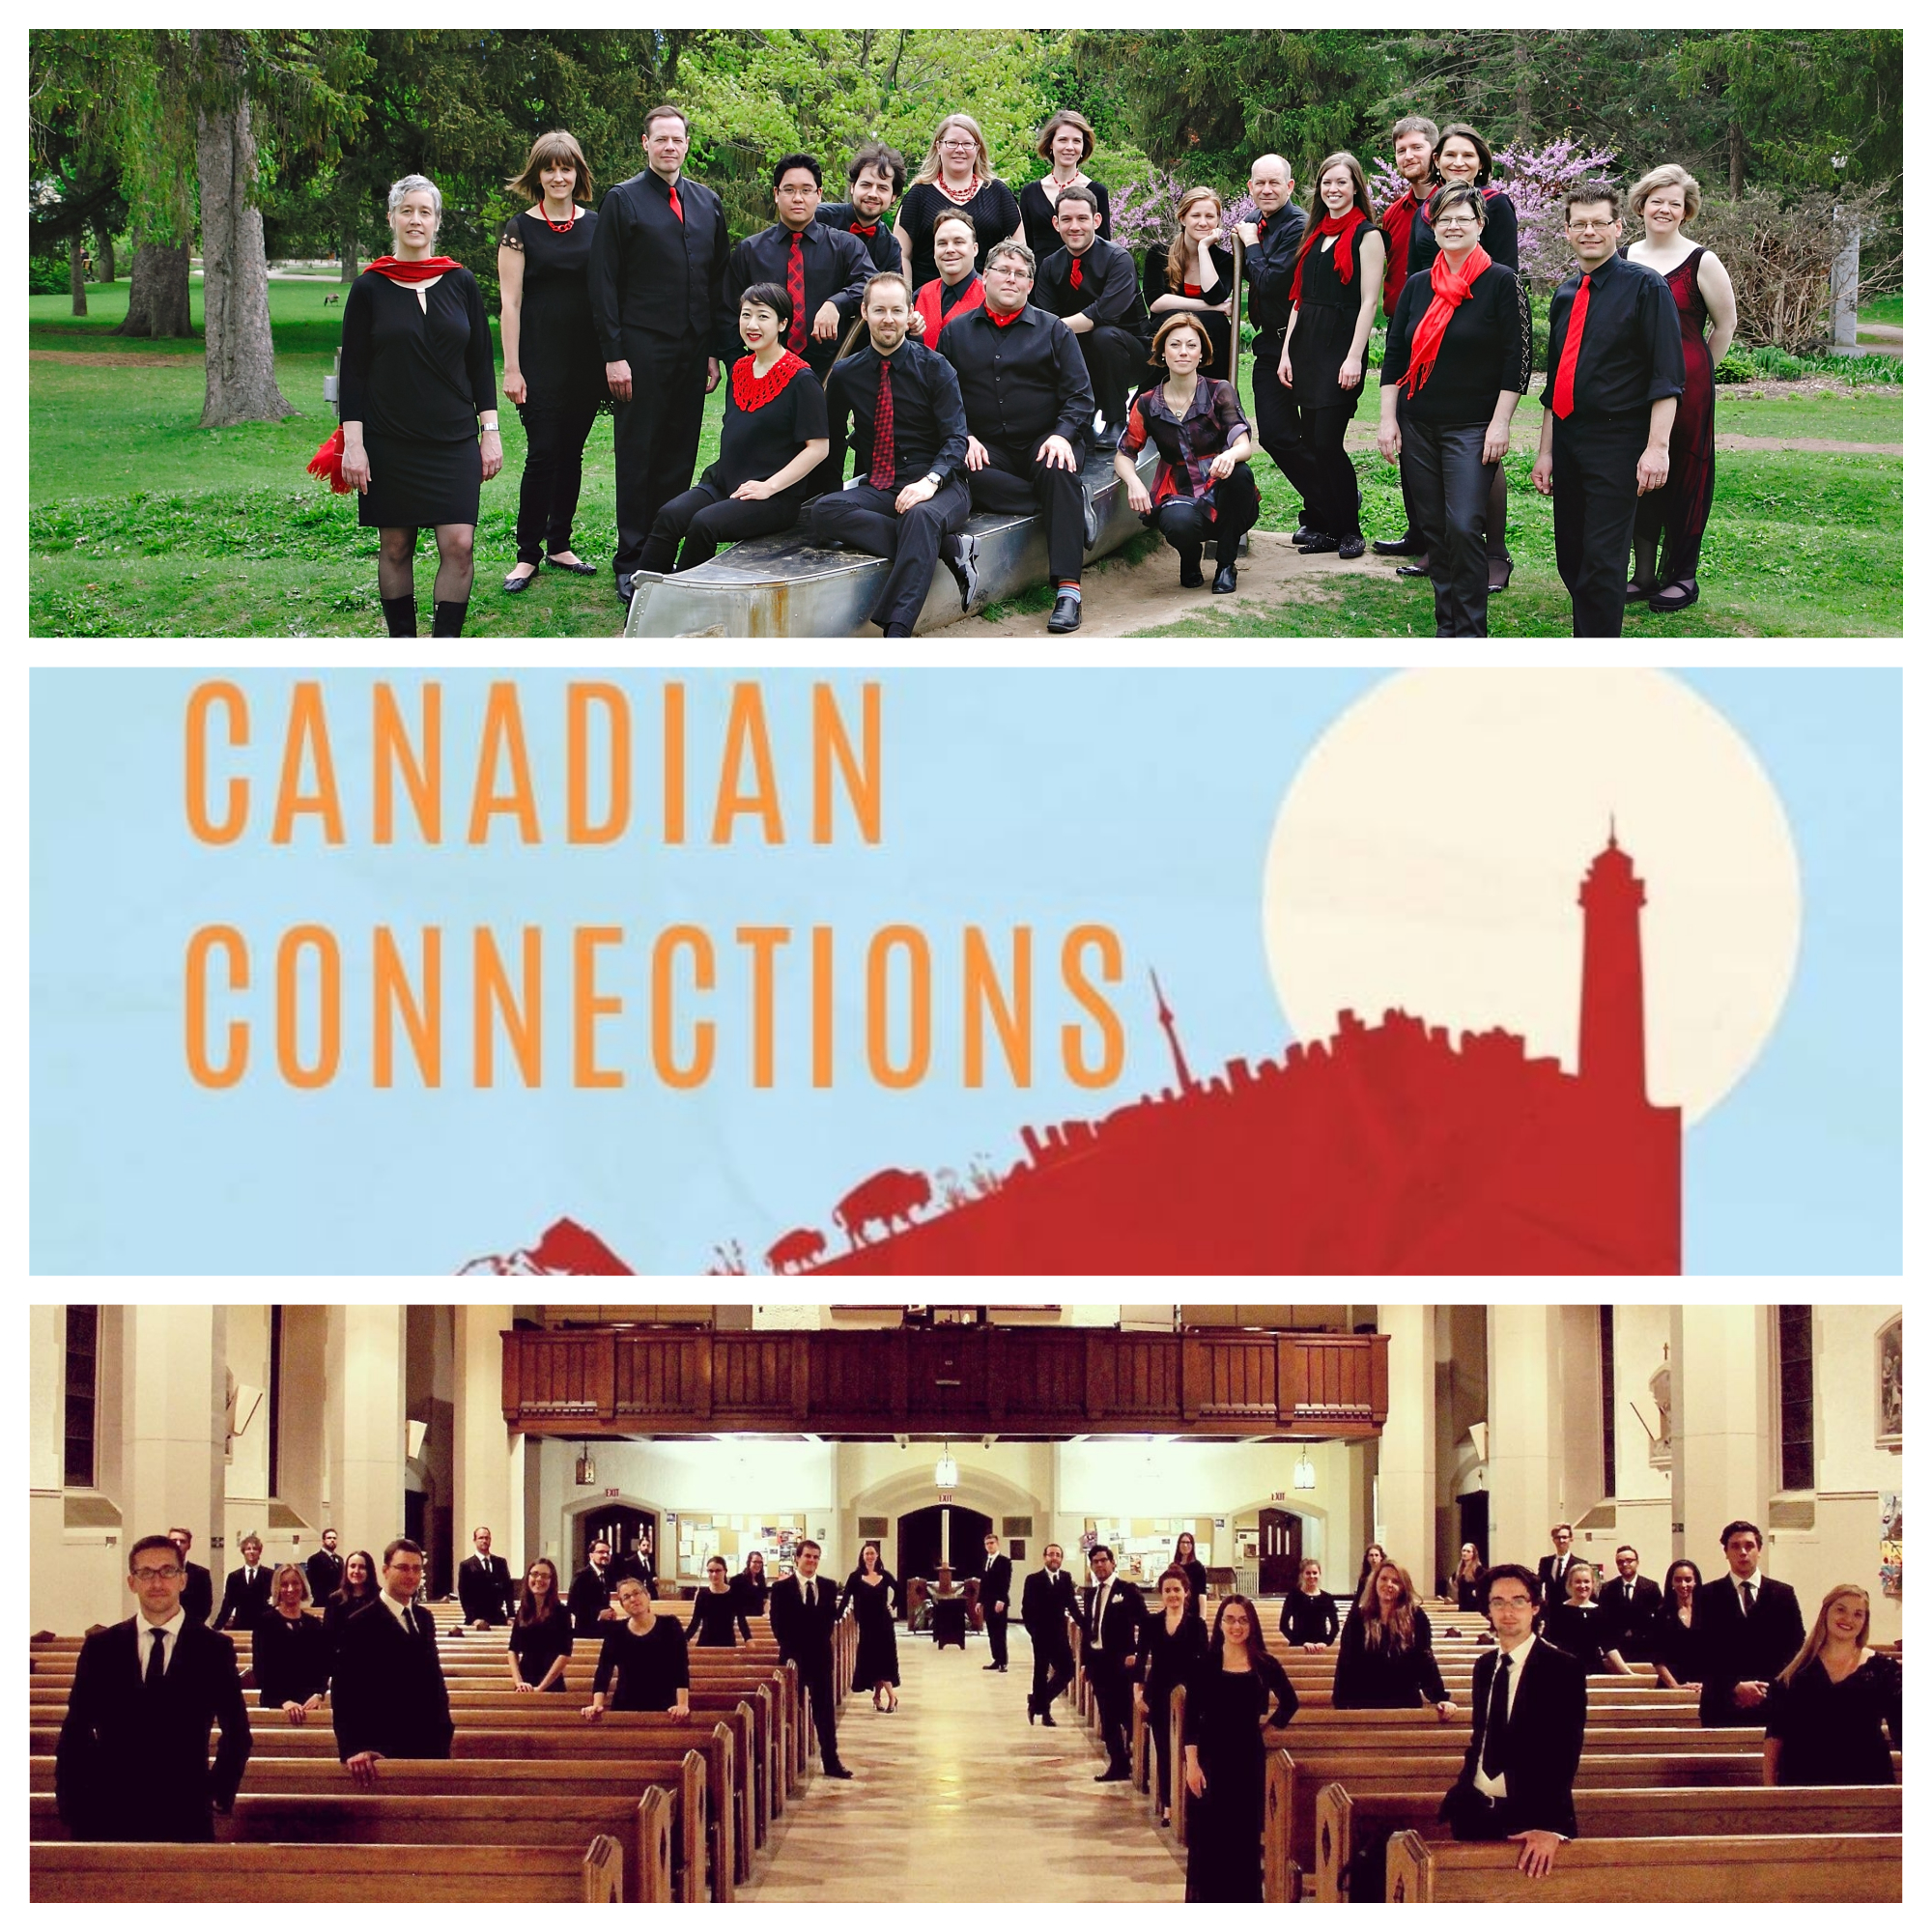 Capital Chamber Choir presents: Canadian Connections with Canadian Chamber Choir - Sunday, March 17, 3:00 PMSt. Joseph's Parish, Ottawa